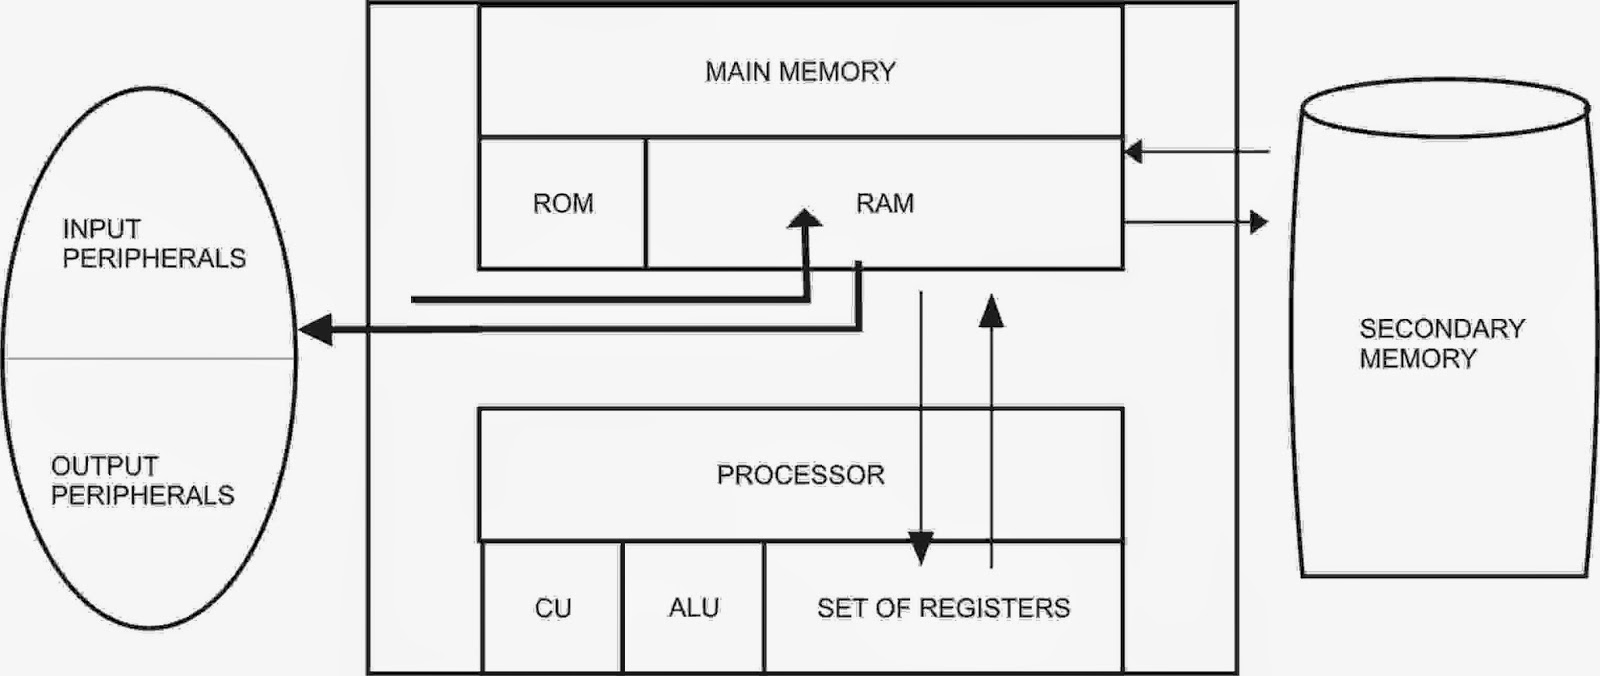 medium resolution of in this block diagram the main hardware components of a typical computer system are connected together alongwith their subparts in such a way that the